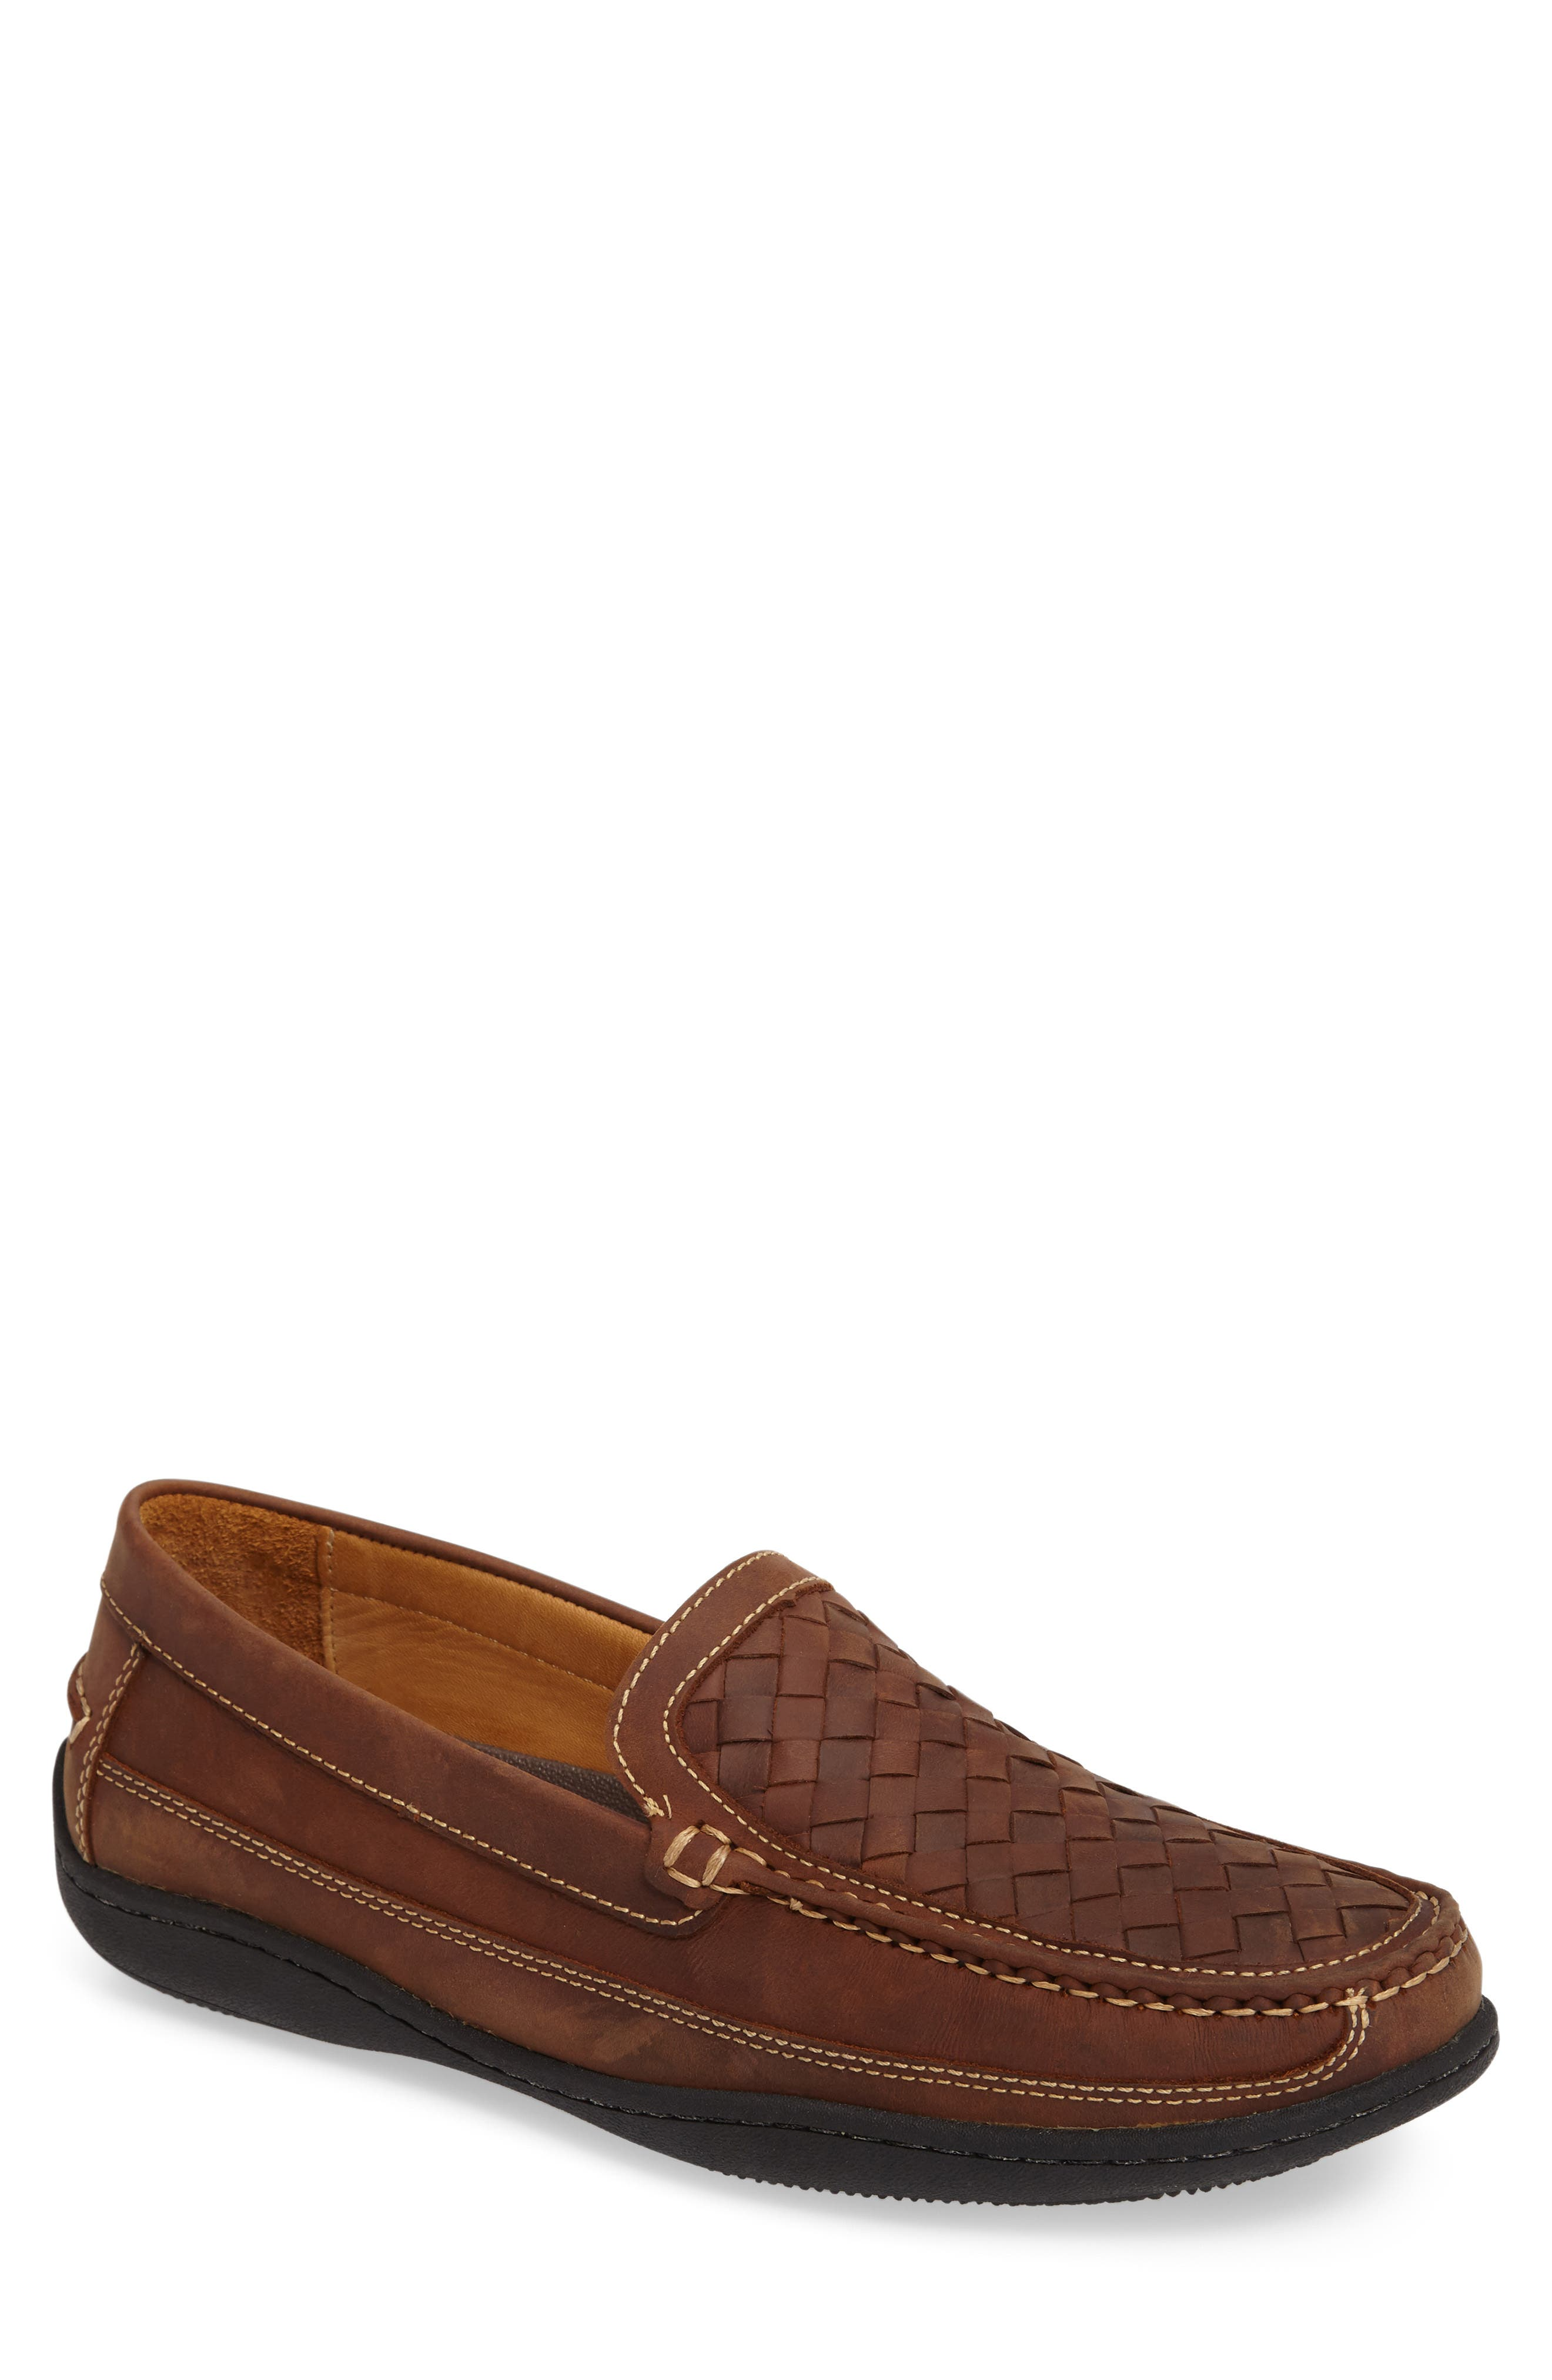 Fowler Woven Loafer,                             Main thumbnail 1, color,                             TAN LEATHER